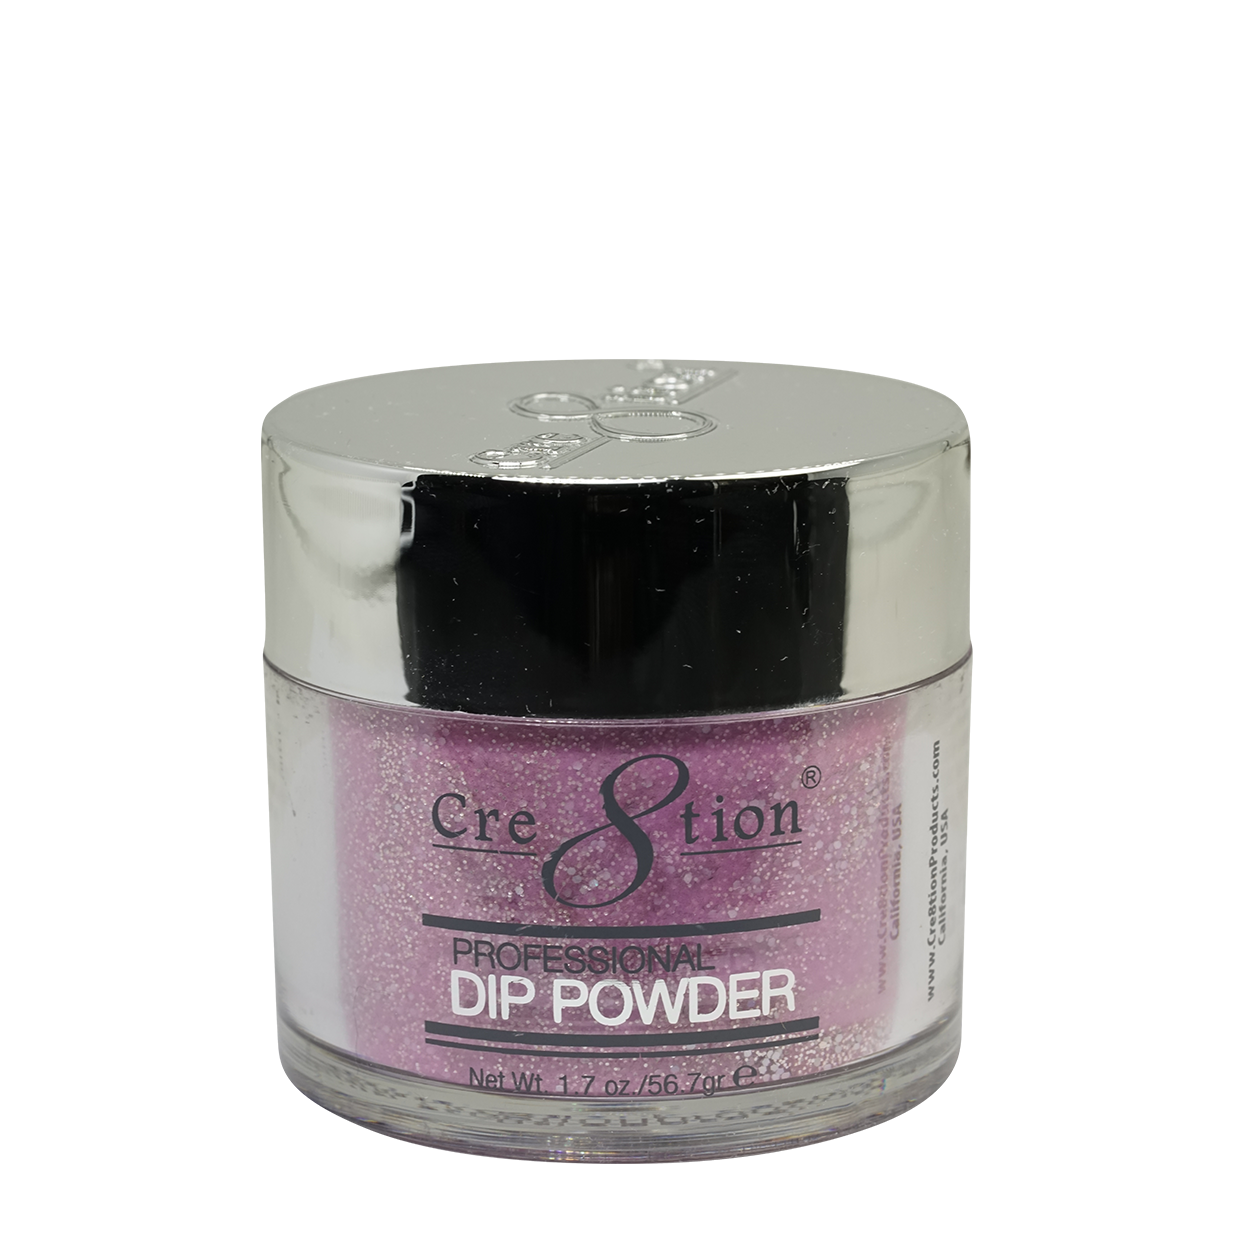 Cre8tion Matching Dip Powder 1.7oz 177 NIGHT OF DELIGHT